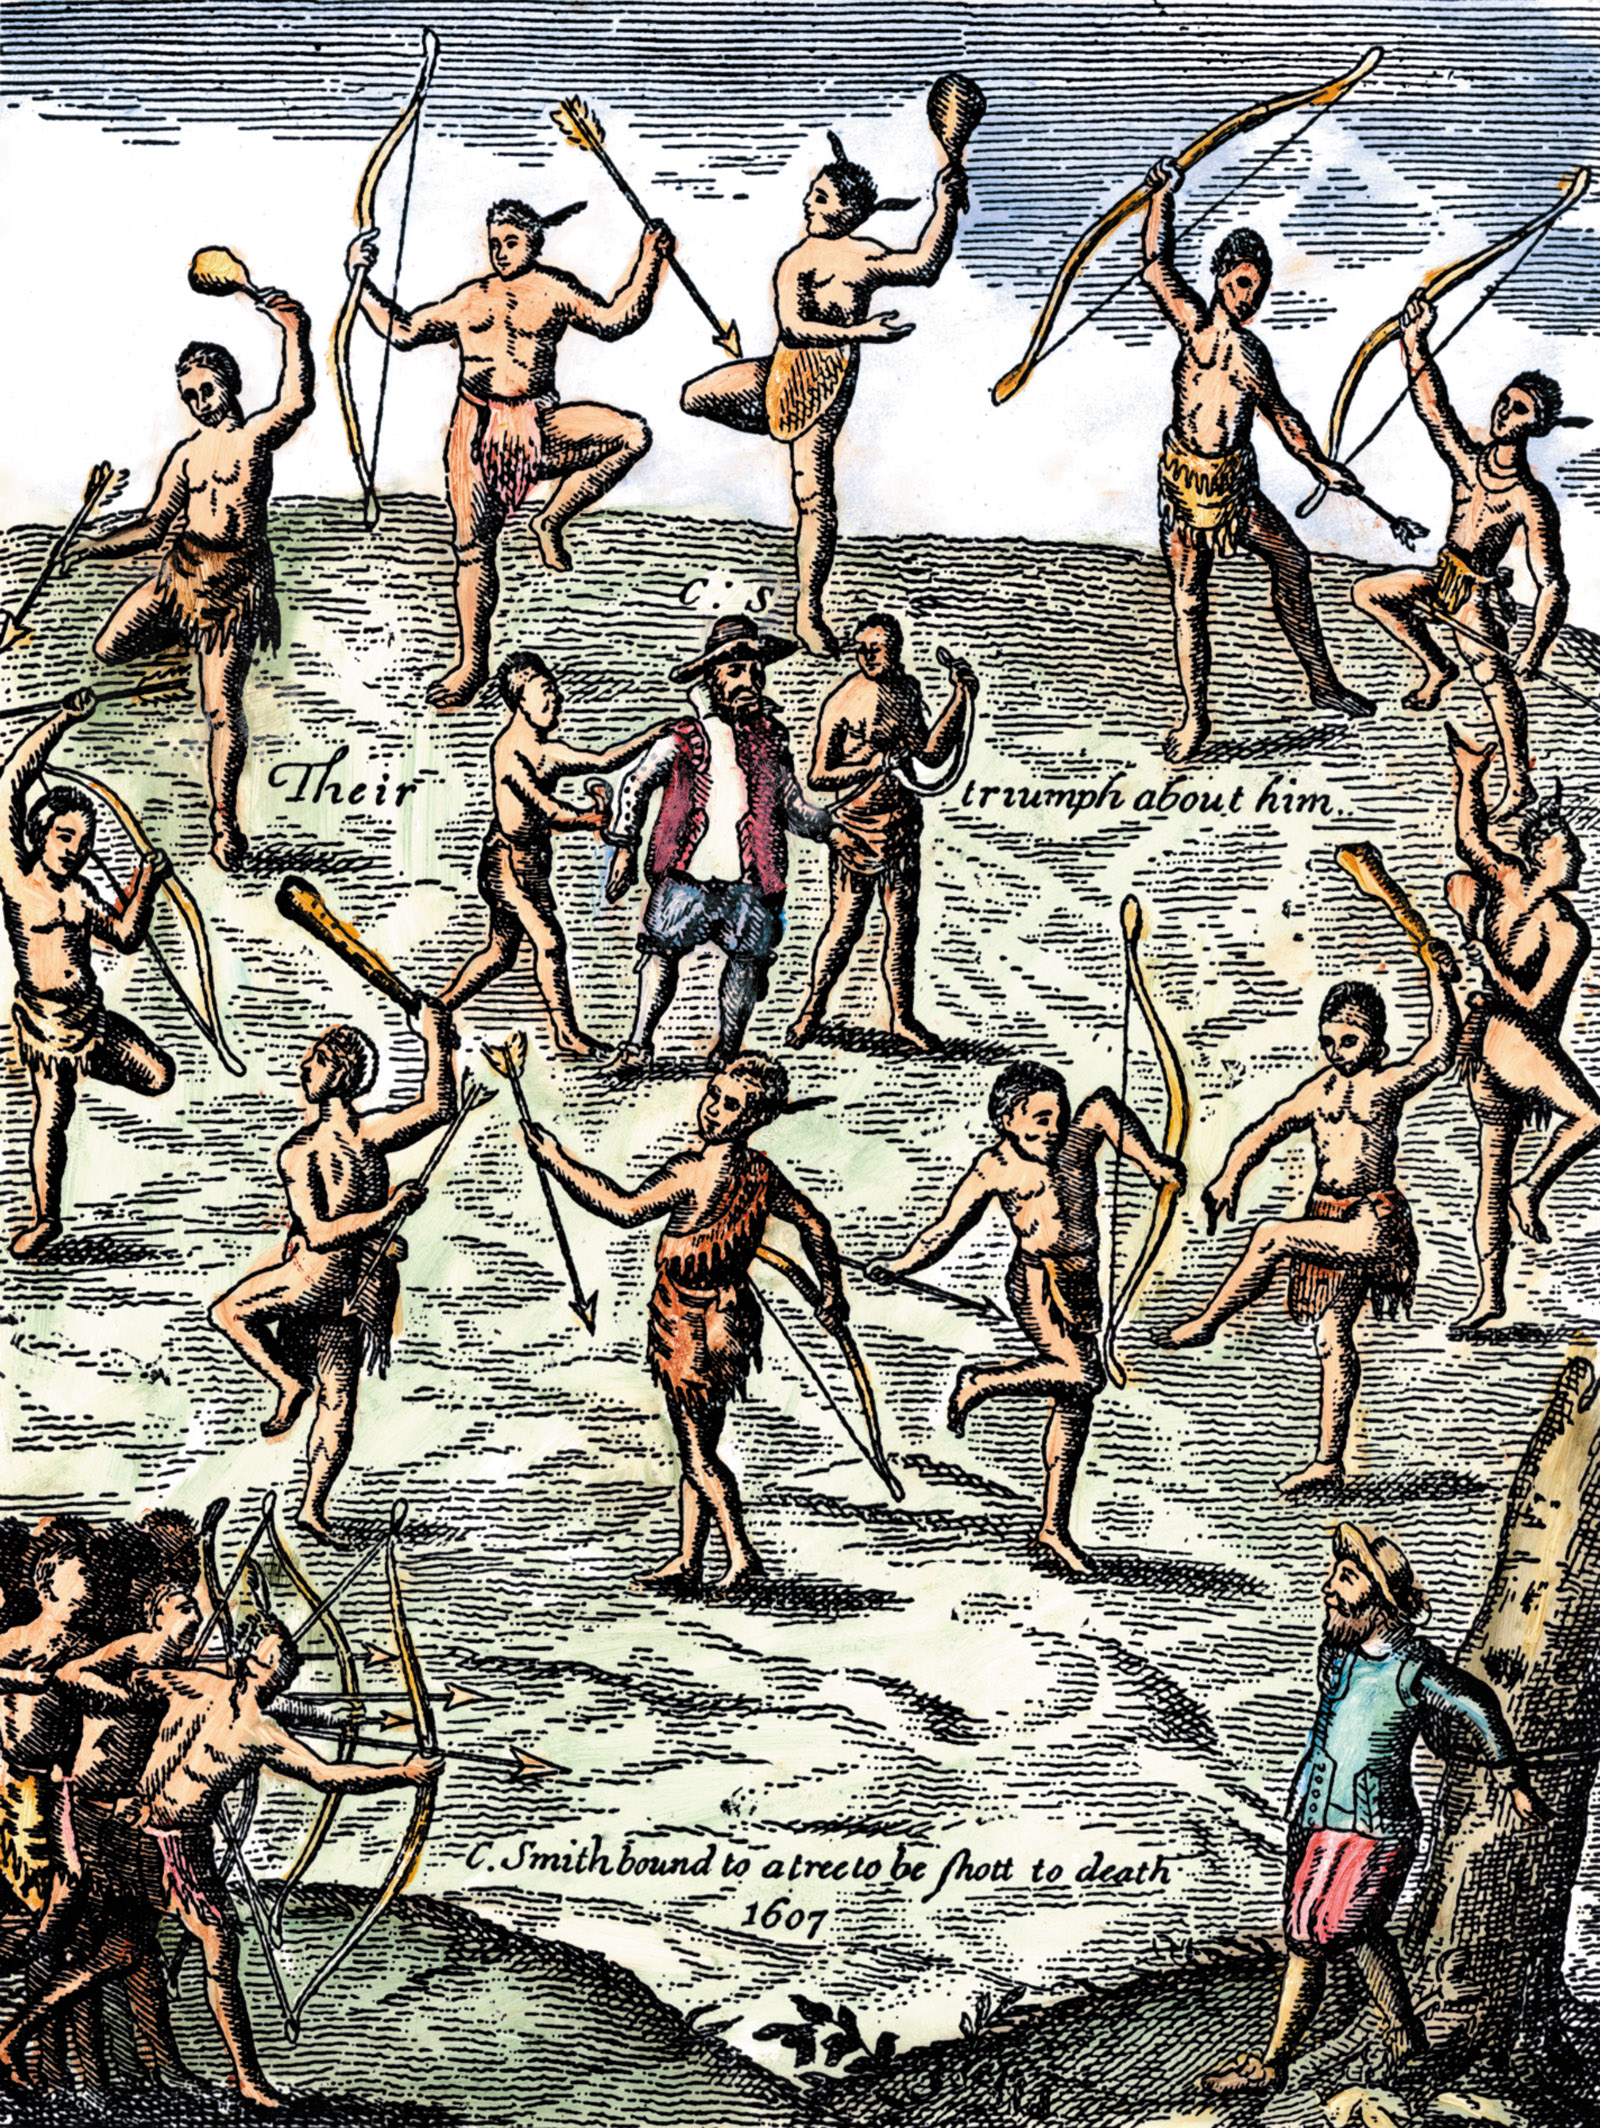 Captain John Smith taken captive by the Powhatan Native Americans; color engraving from Captain Smith's Generall Historie of Virginia, 1624